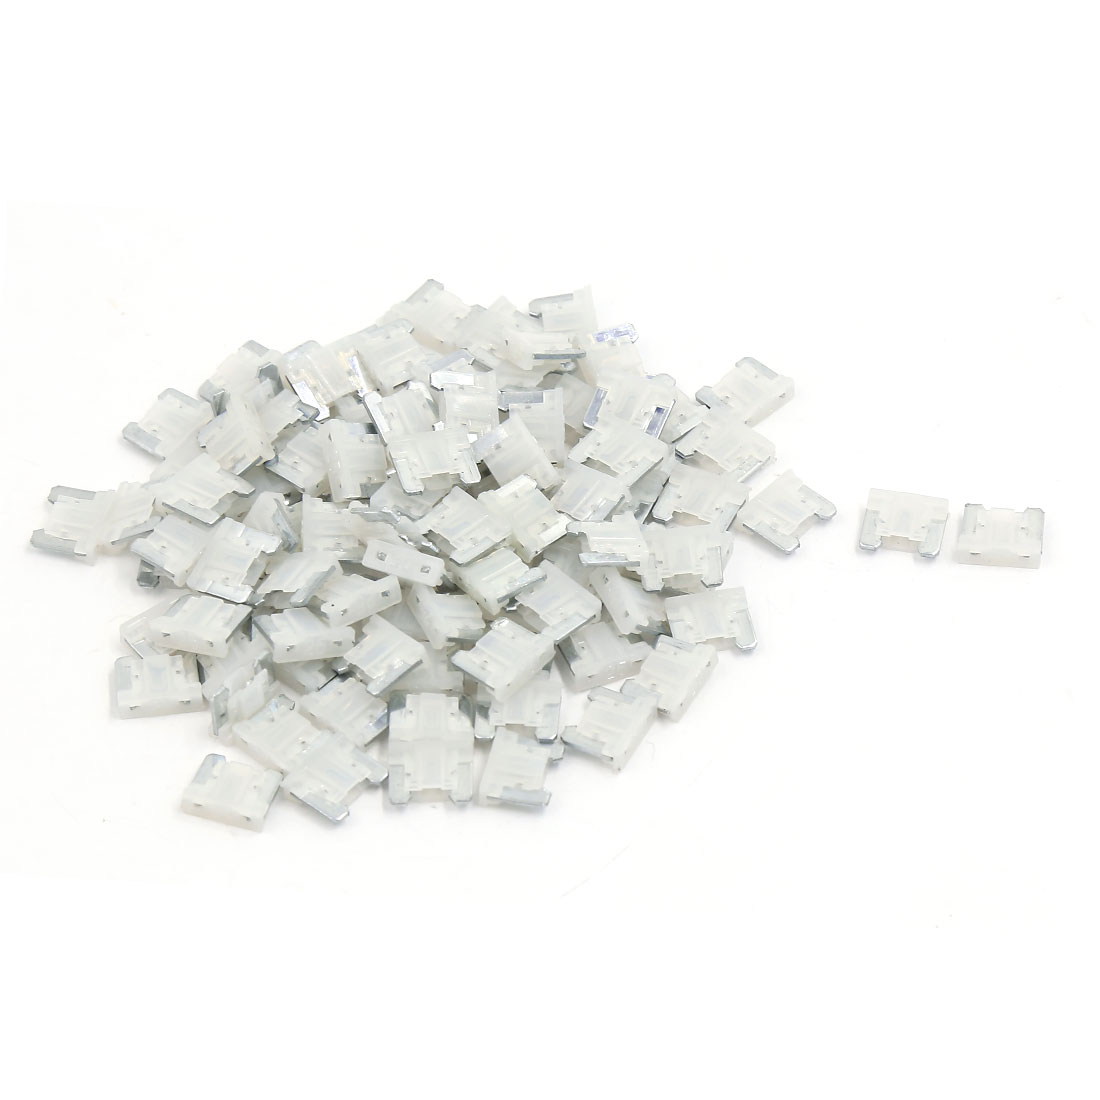 101 Pcs 25A Automotive Car Auto Caravan Truck ATC ATO Mini Blade Fuse White